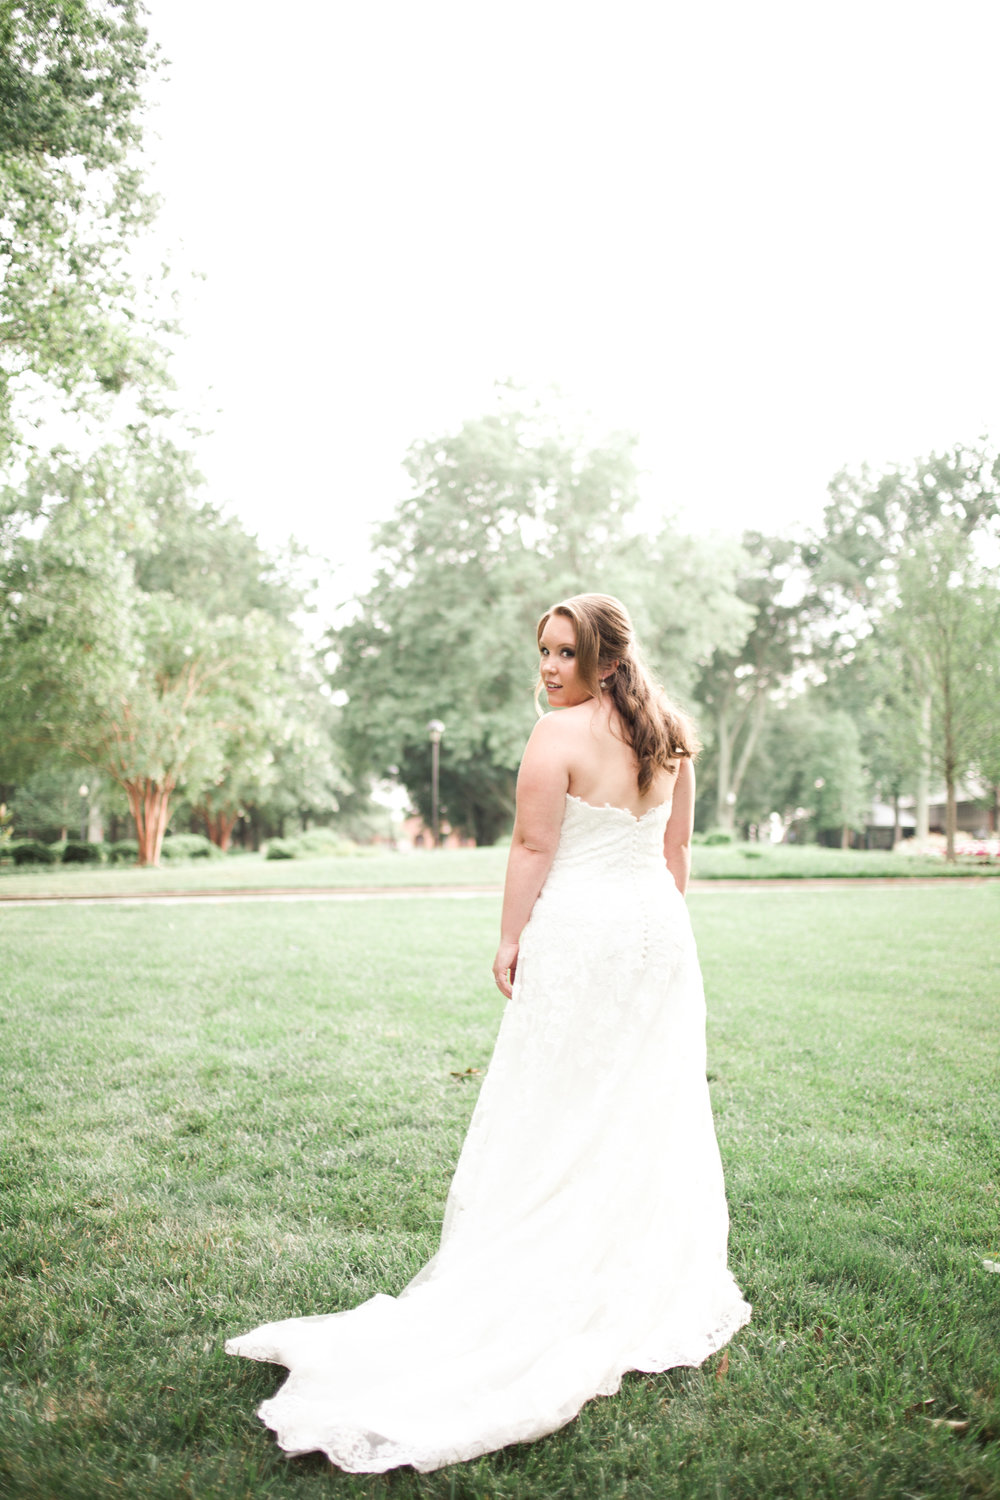 gabbie_bridal_poured_out_photography-24.jpg